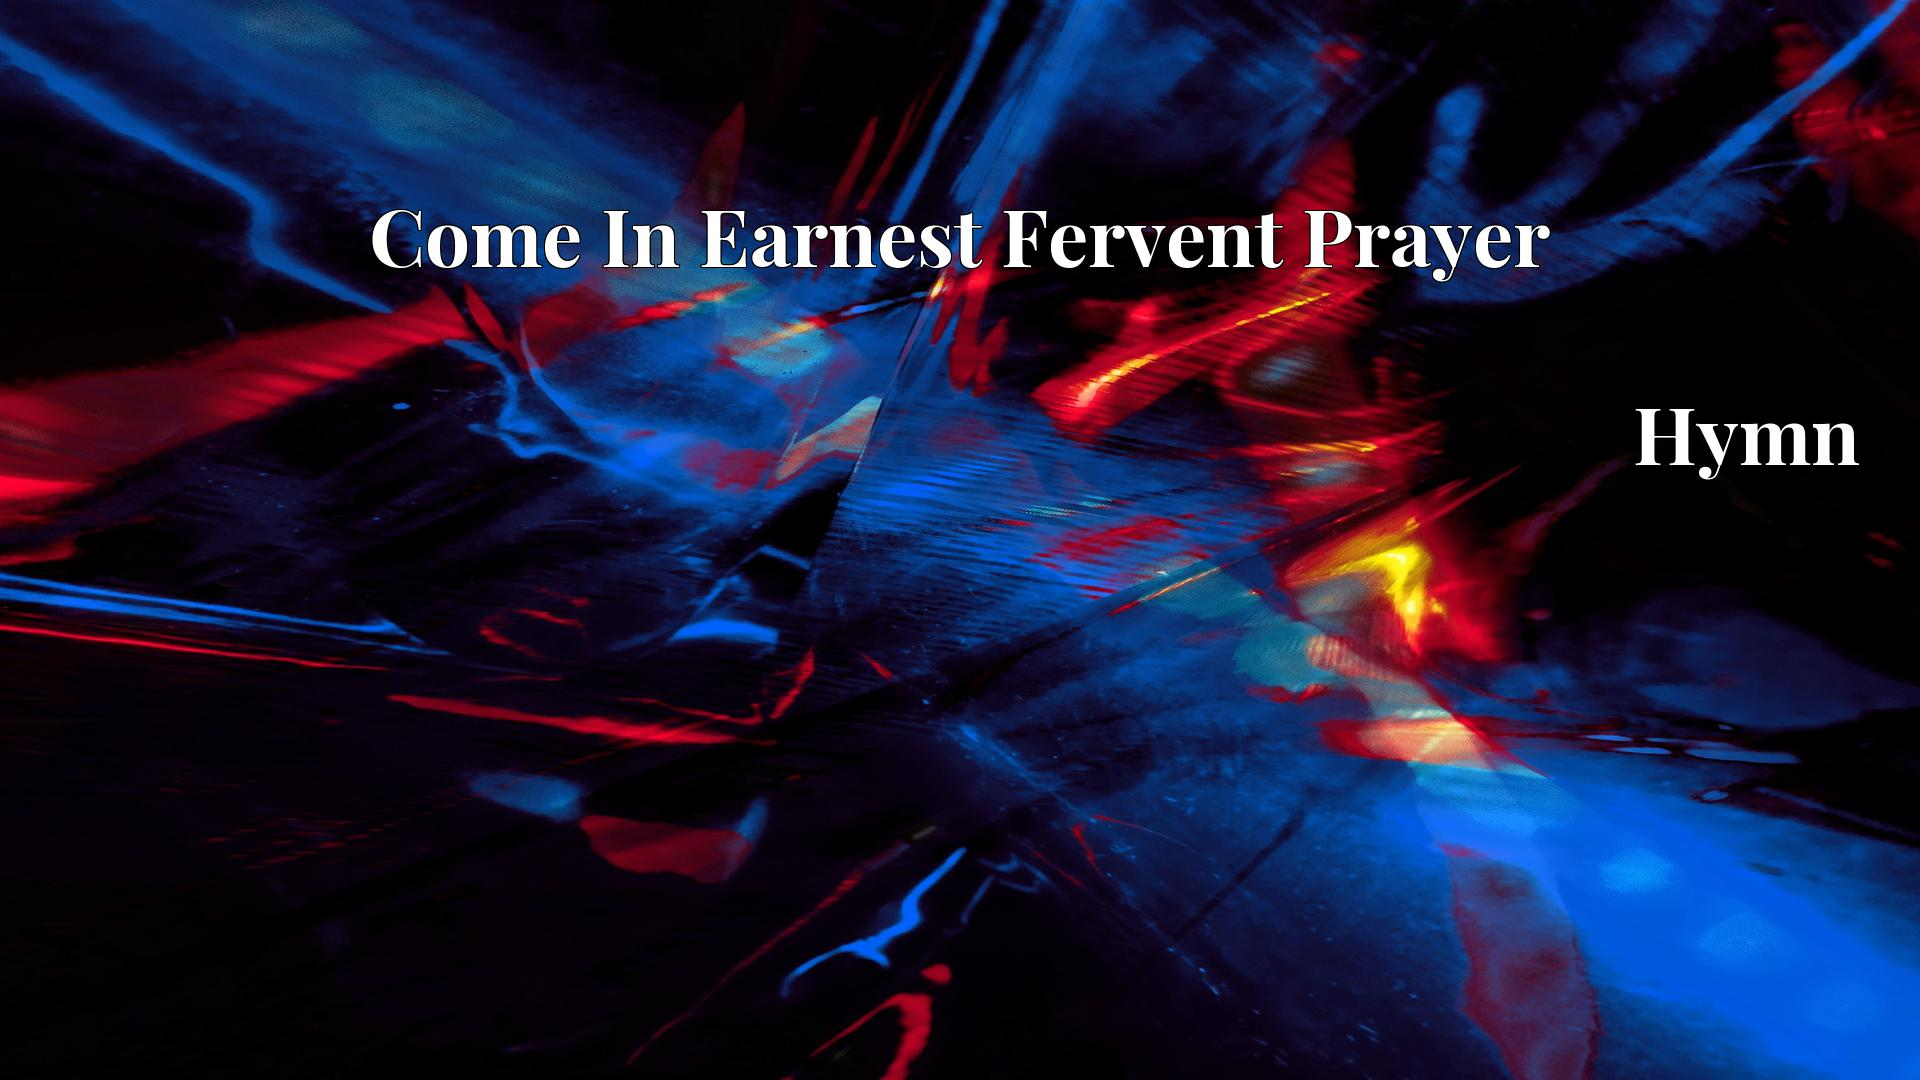 Come In Earnest Fervent Prayer - Hymn